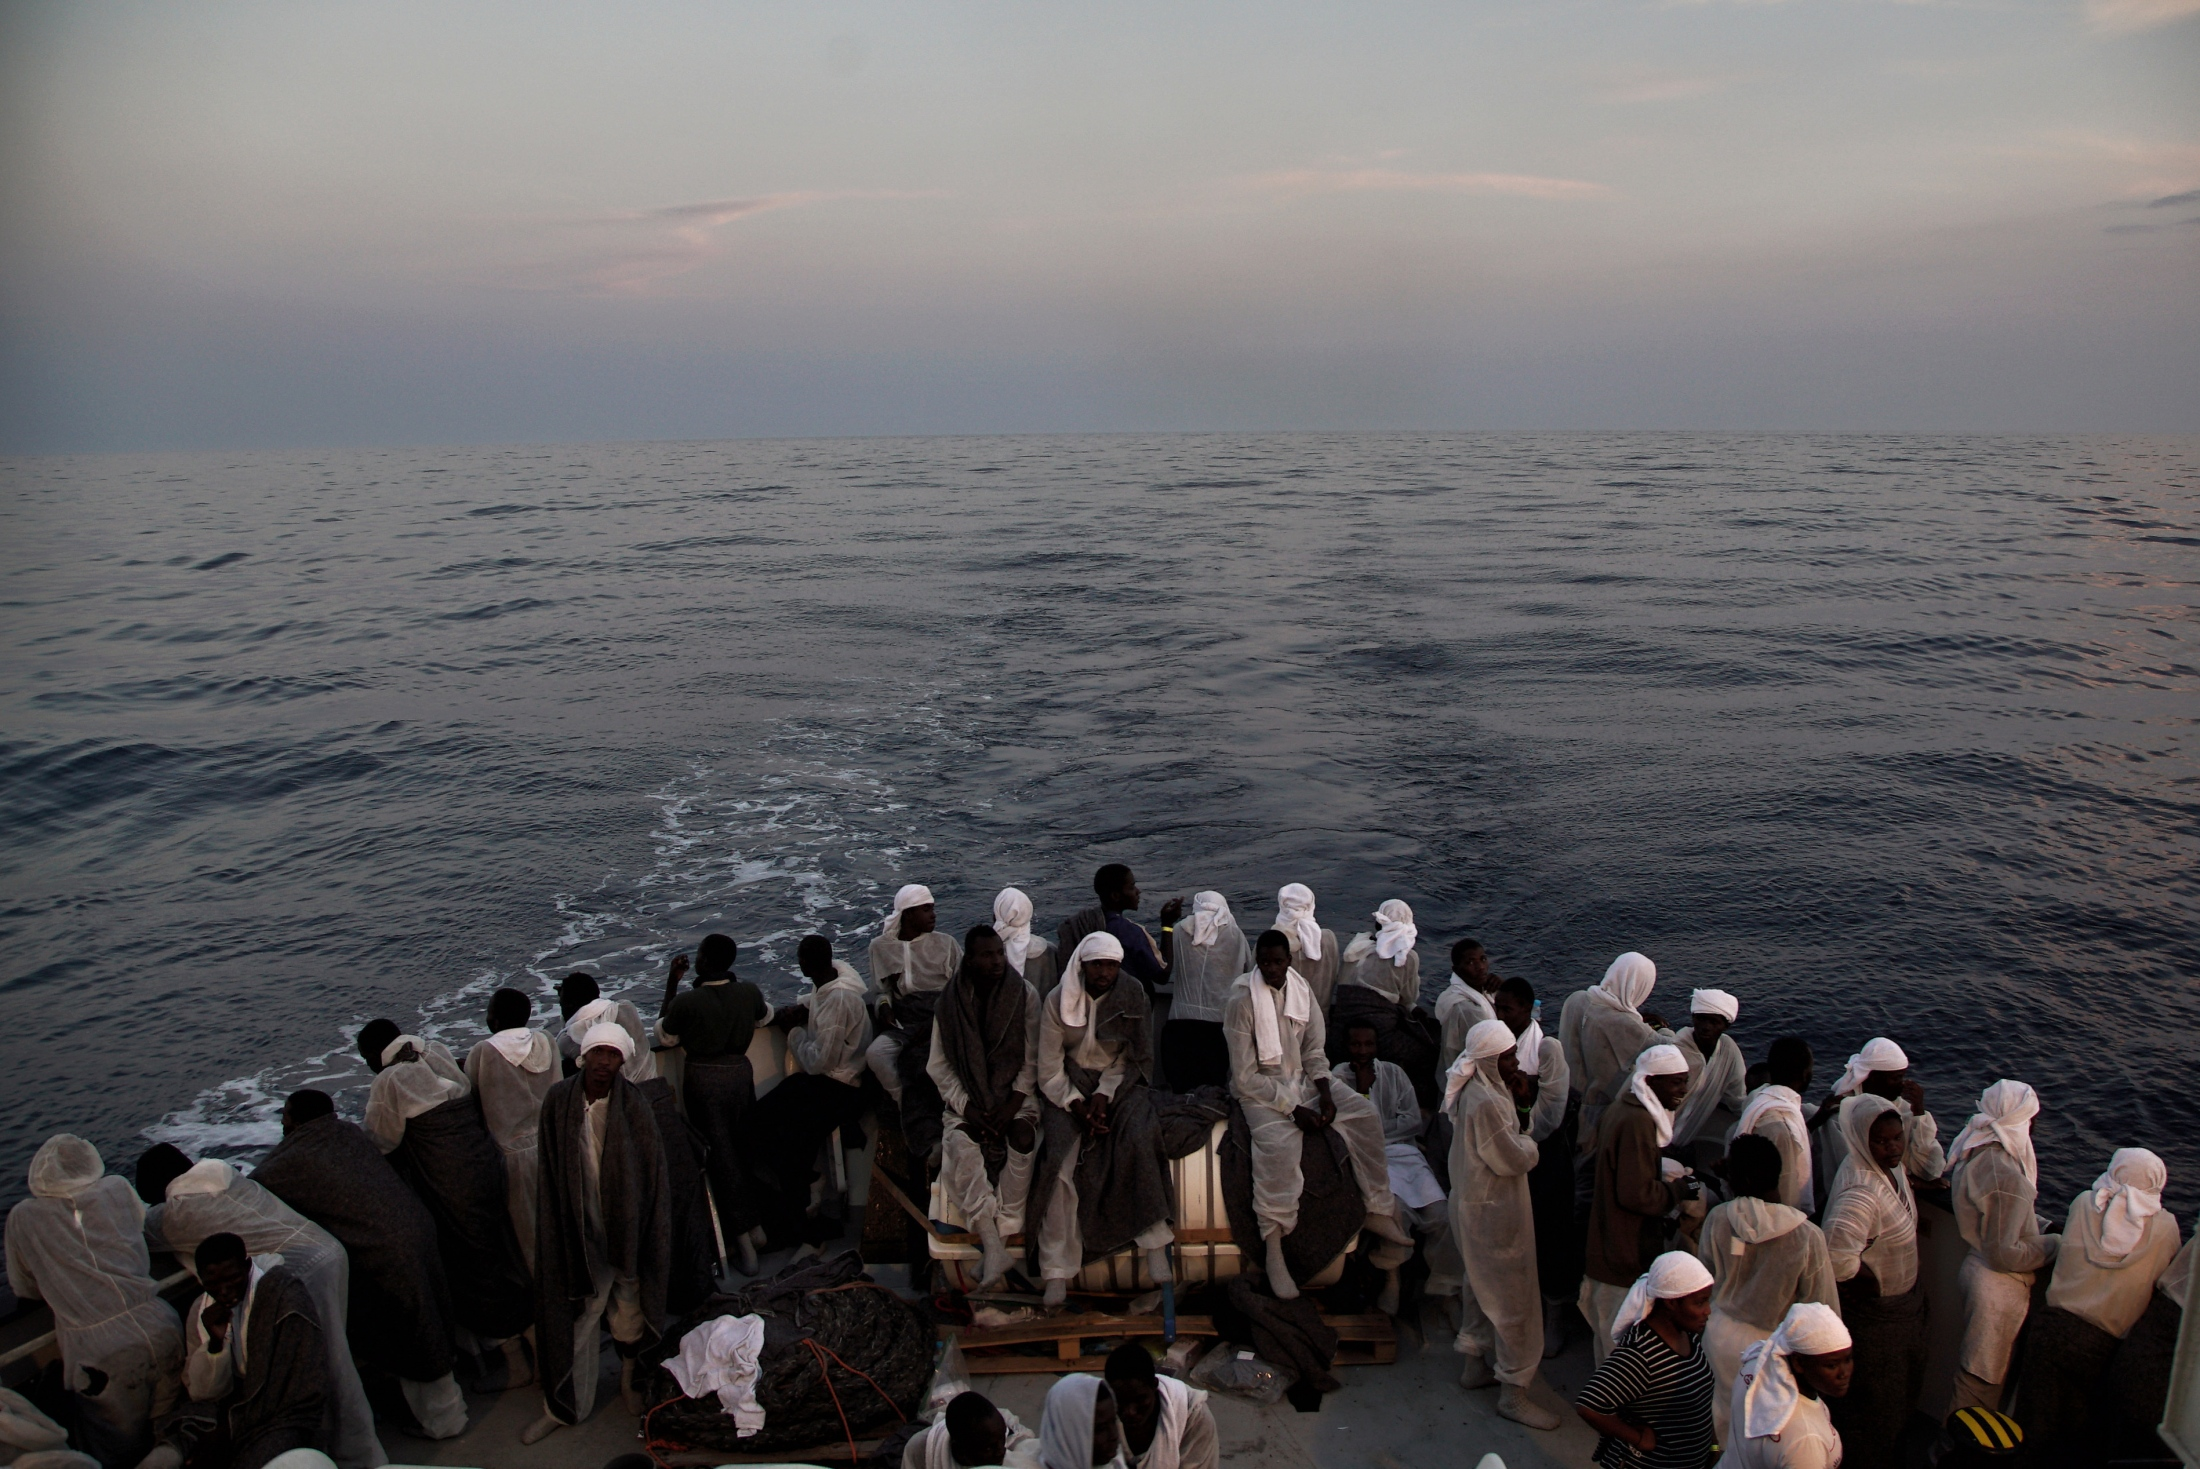 In this Saturday June 25, 2016 file photo, migrants look out from the stern of the 'Aquarius' vessel, on the Mediterranean Sea, with more than 600 migrants aboard the ship rescued by SOS Mediterranee and the medical aid group Medecins Sans Frontieres (MSF). By trying to prevent migrants from taking the dangerous sea journey across the Mediterranean, they are dooming them to prolonged abuse in Libya at the hands of authorities and the country's many militias, rights groups warn.